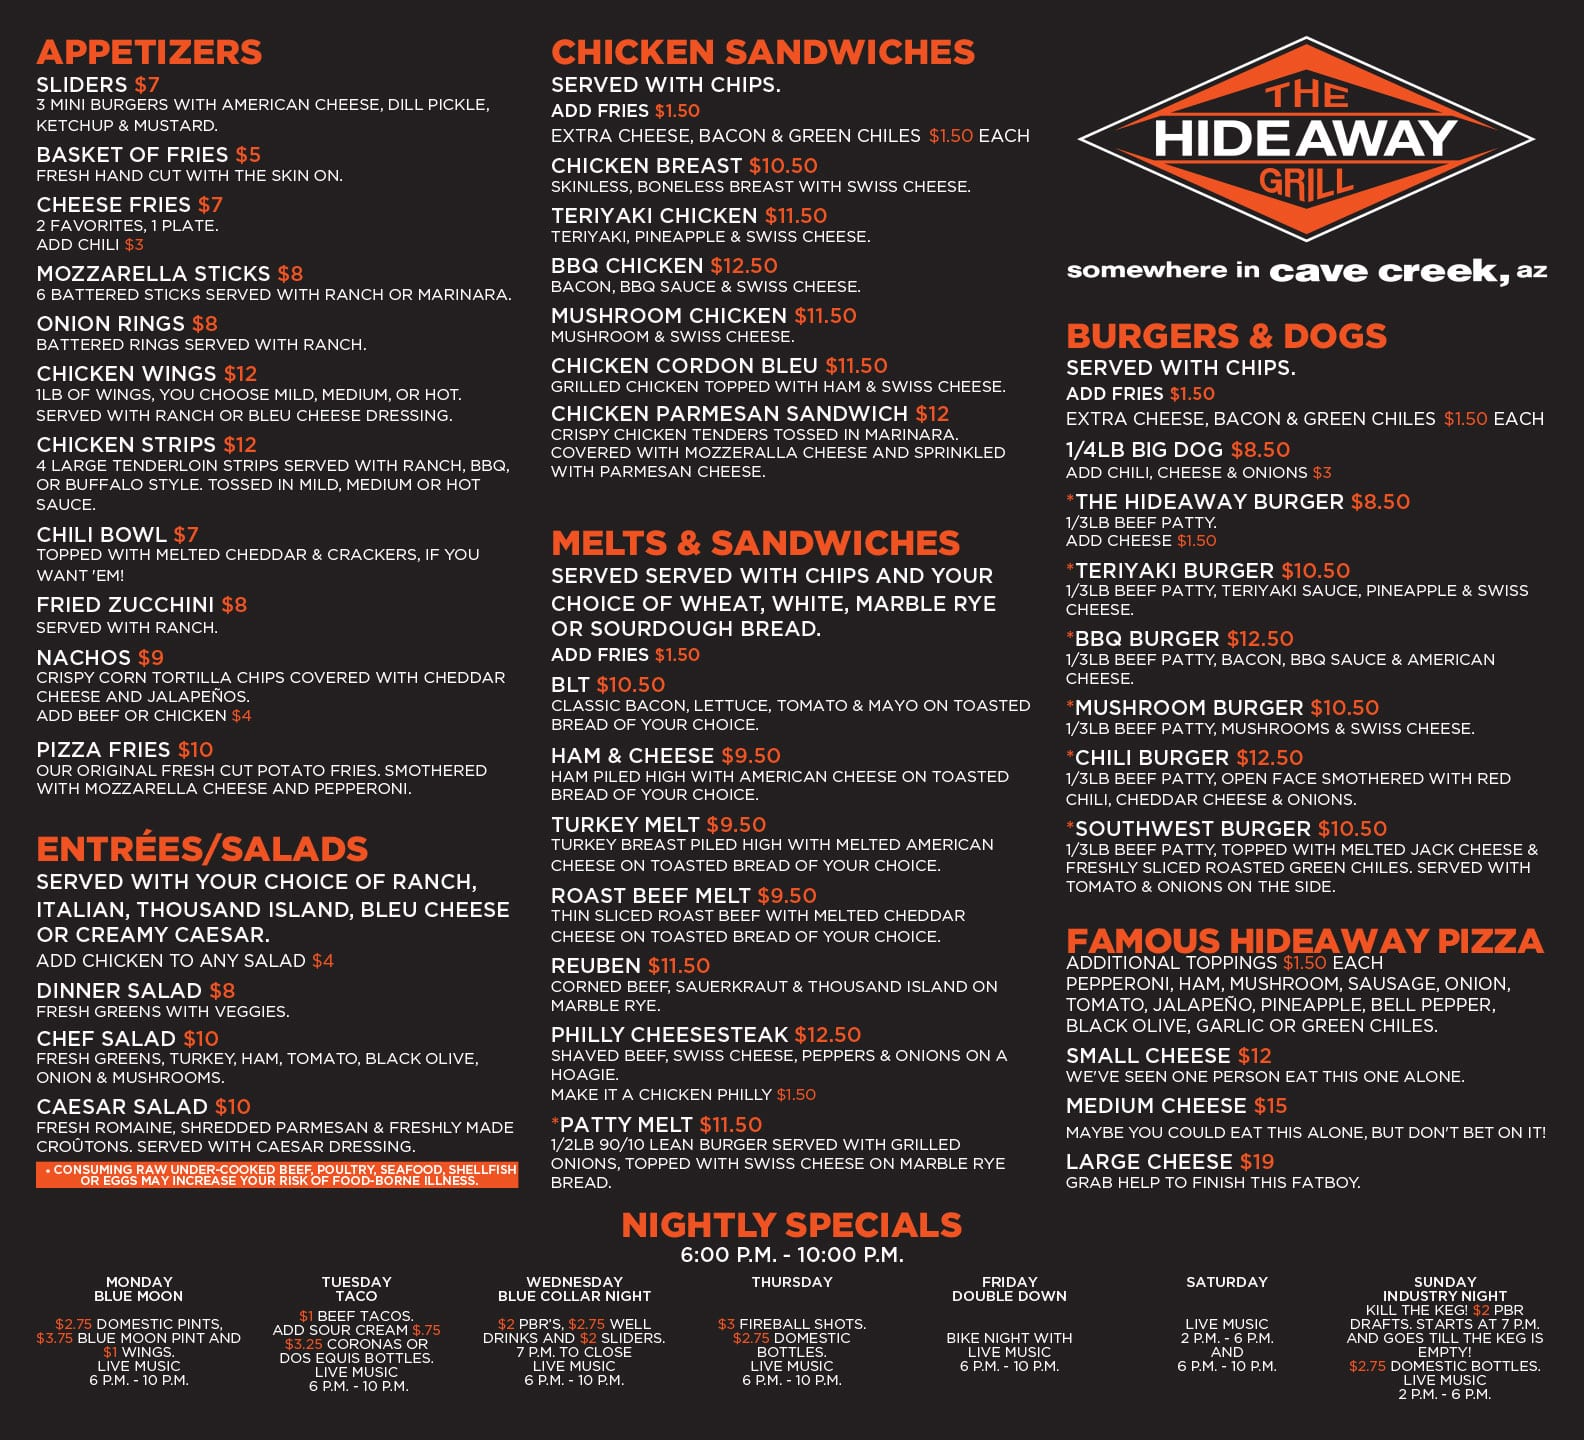 The Hideaway Grill - Cave Creek Menu